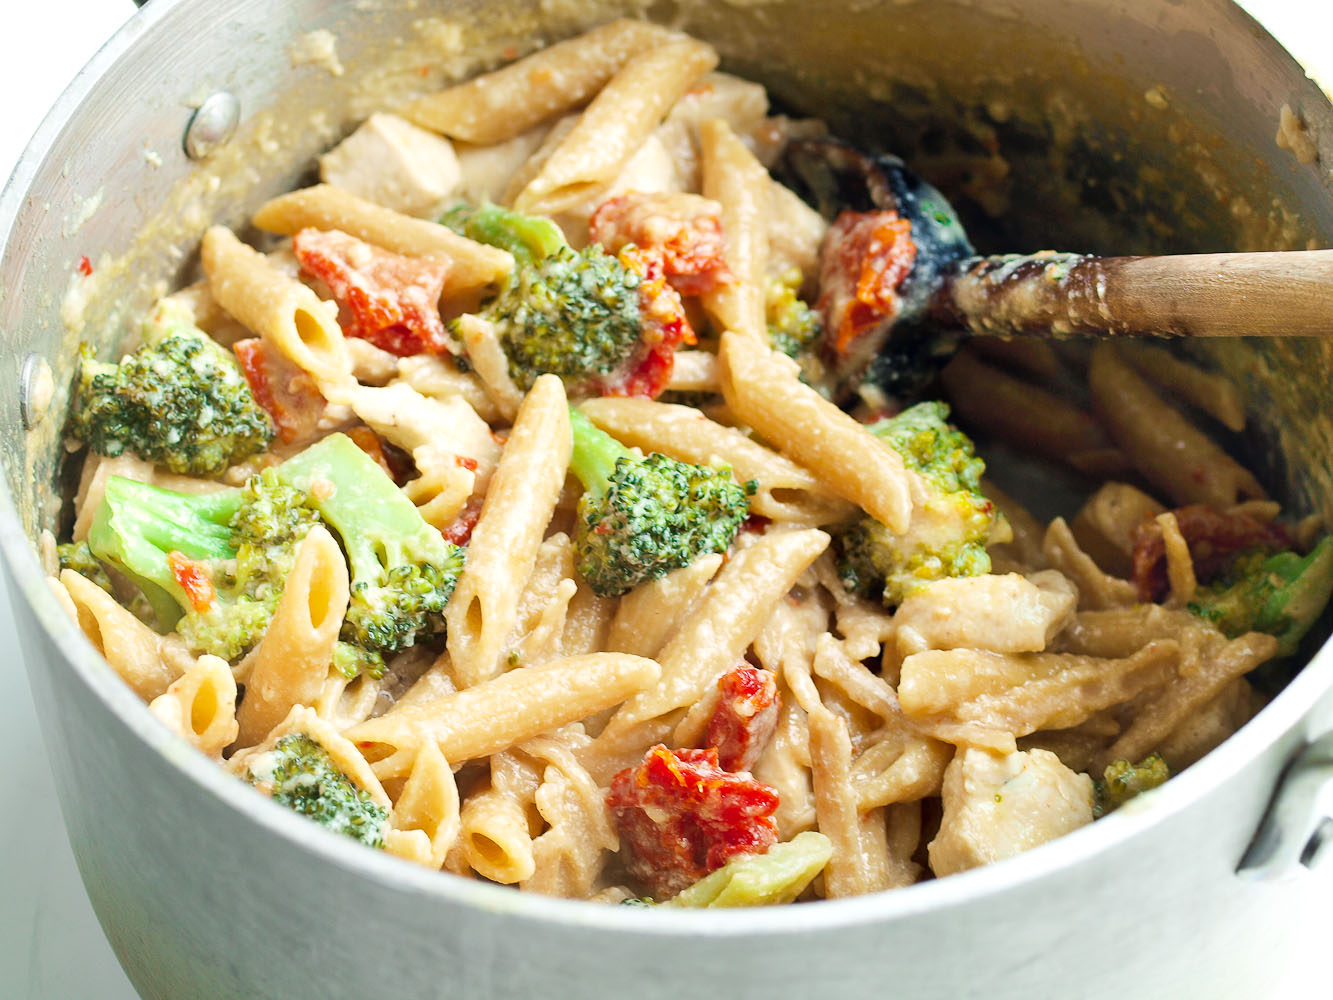 Tangy one pot chicken and veggie pasta dinner healthy ideas for kids forumfinder Gallery